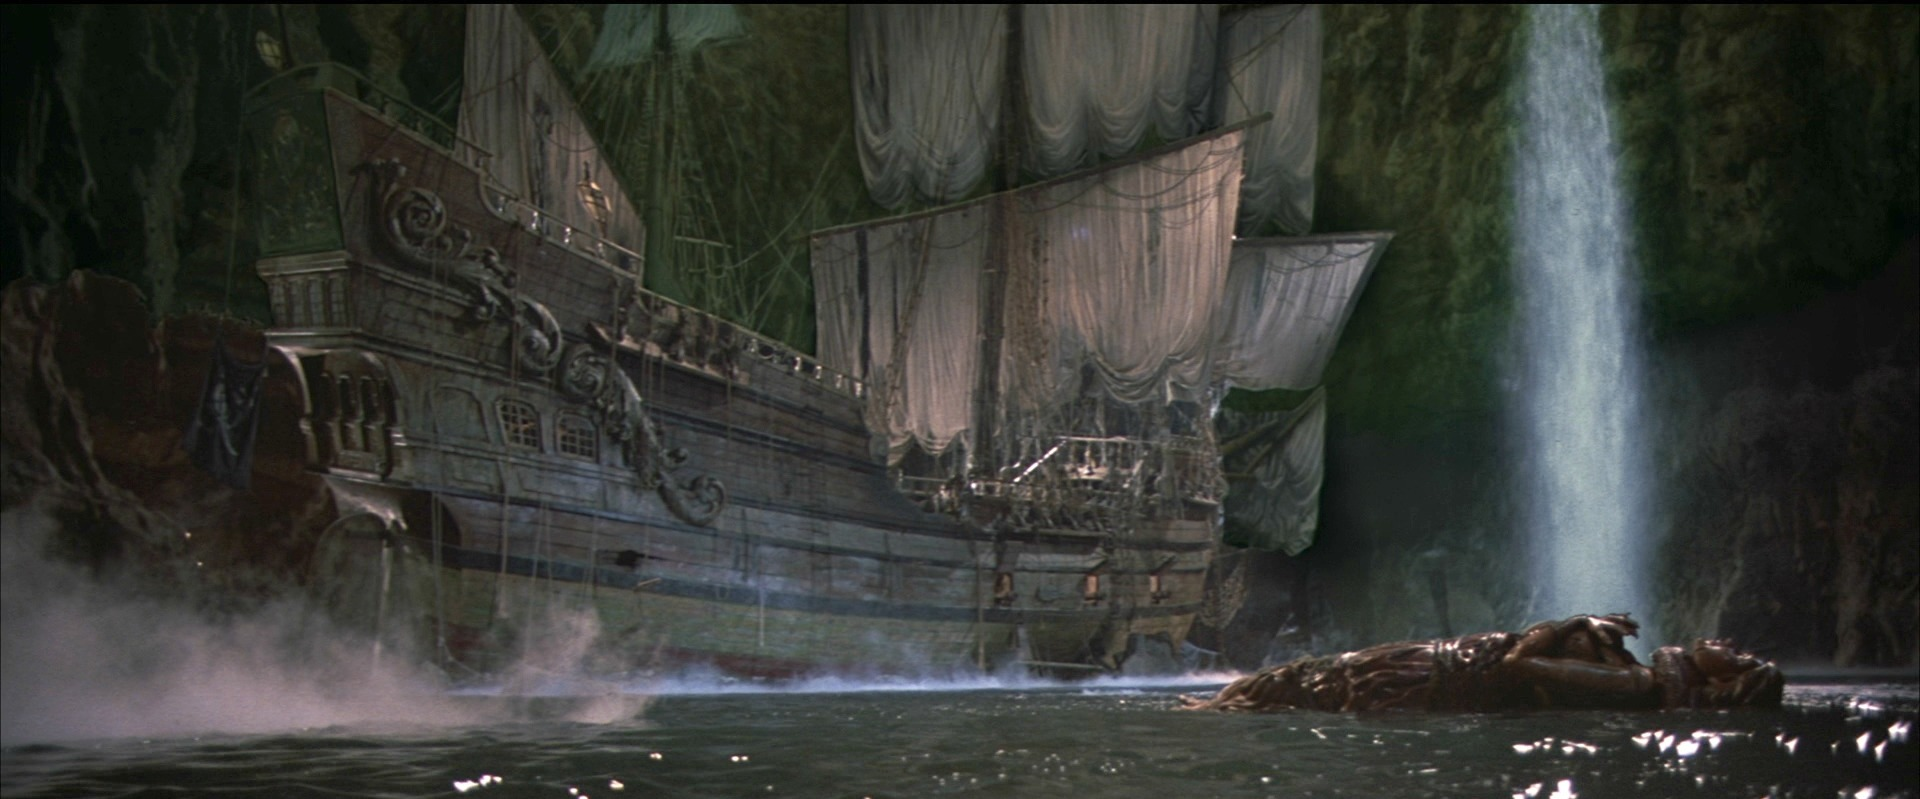 Image result for Goonies ship